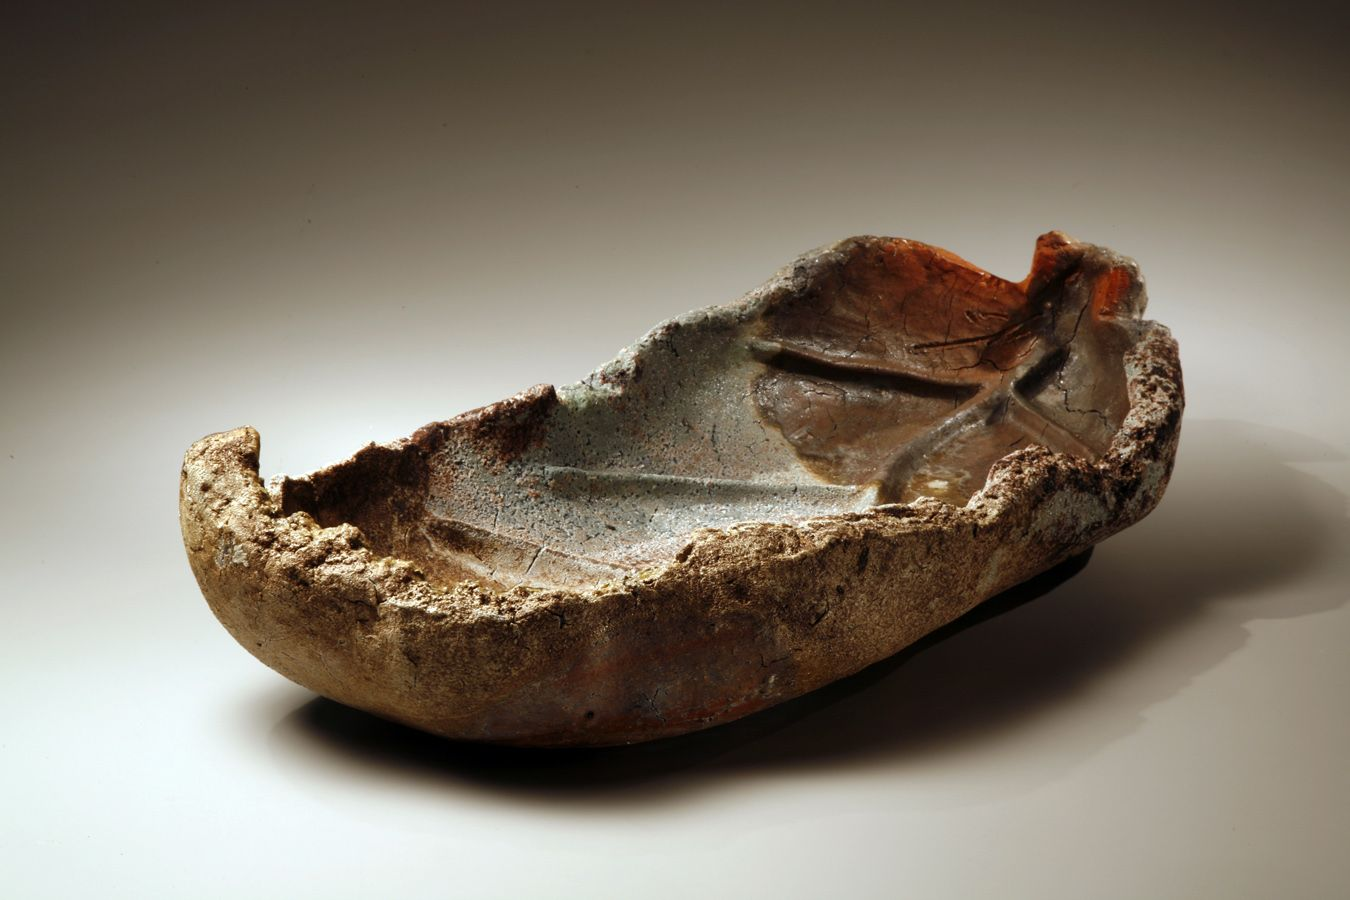 Large leaf-shaped Bizen-ware platter with curled edges and dynamically molded 'veins', 2006